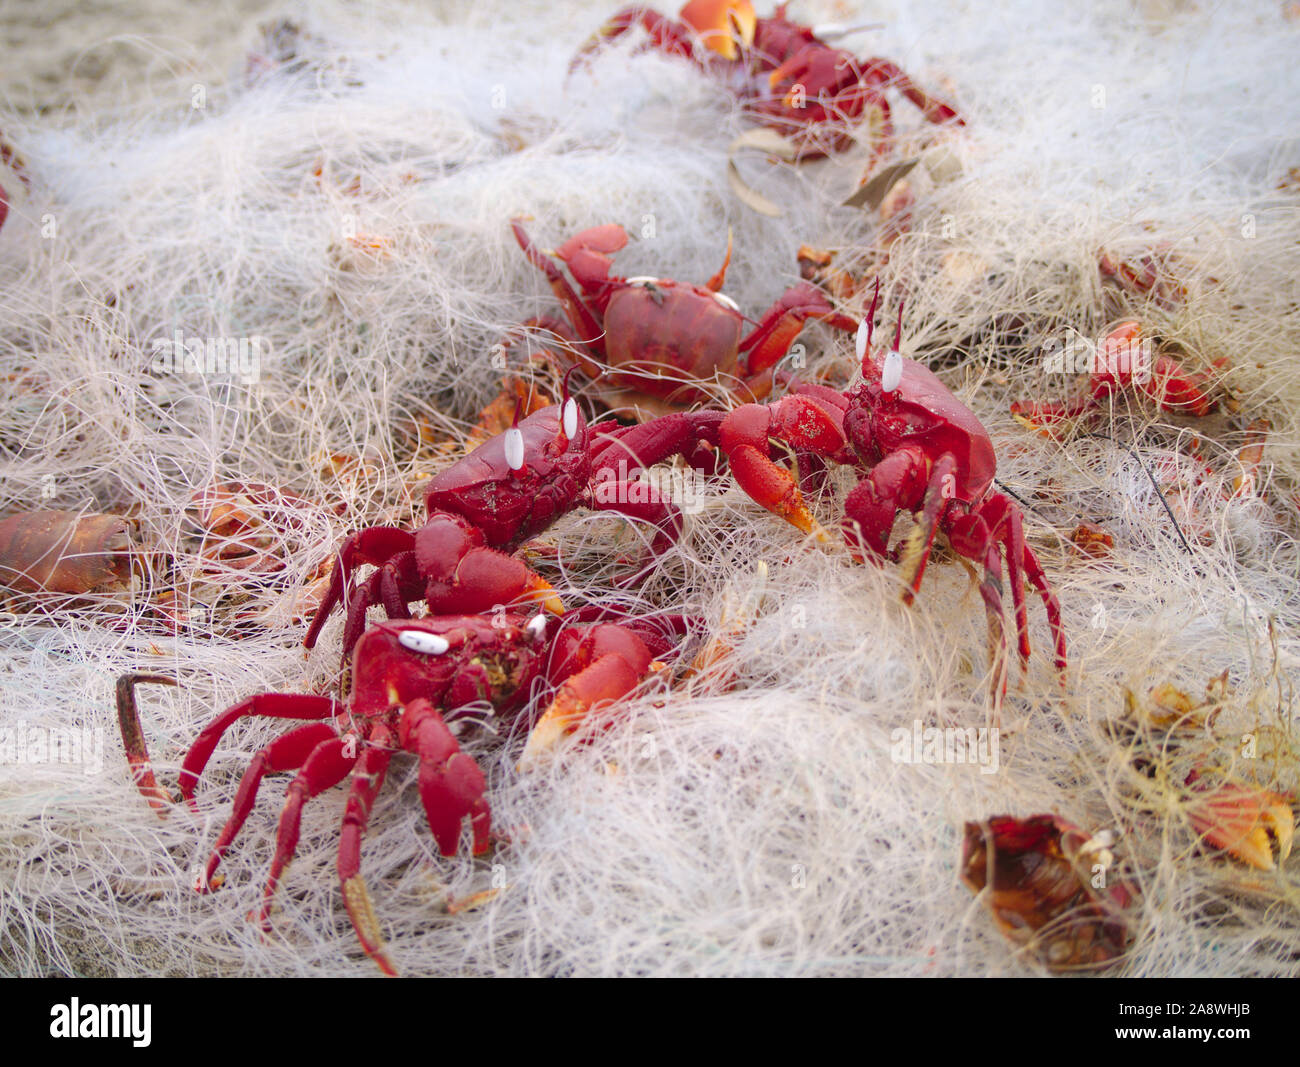 Red Ghost Crabs stuck in a disused fishing net discarded on Cox's Bazar Beach Stock Photo